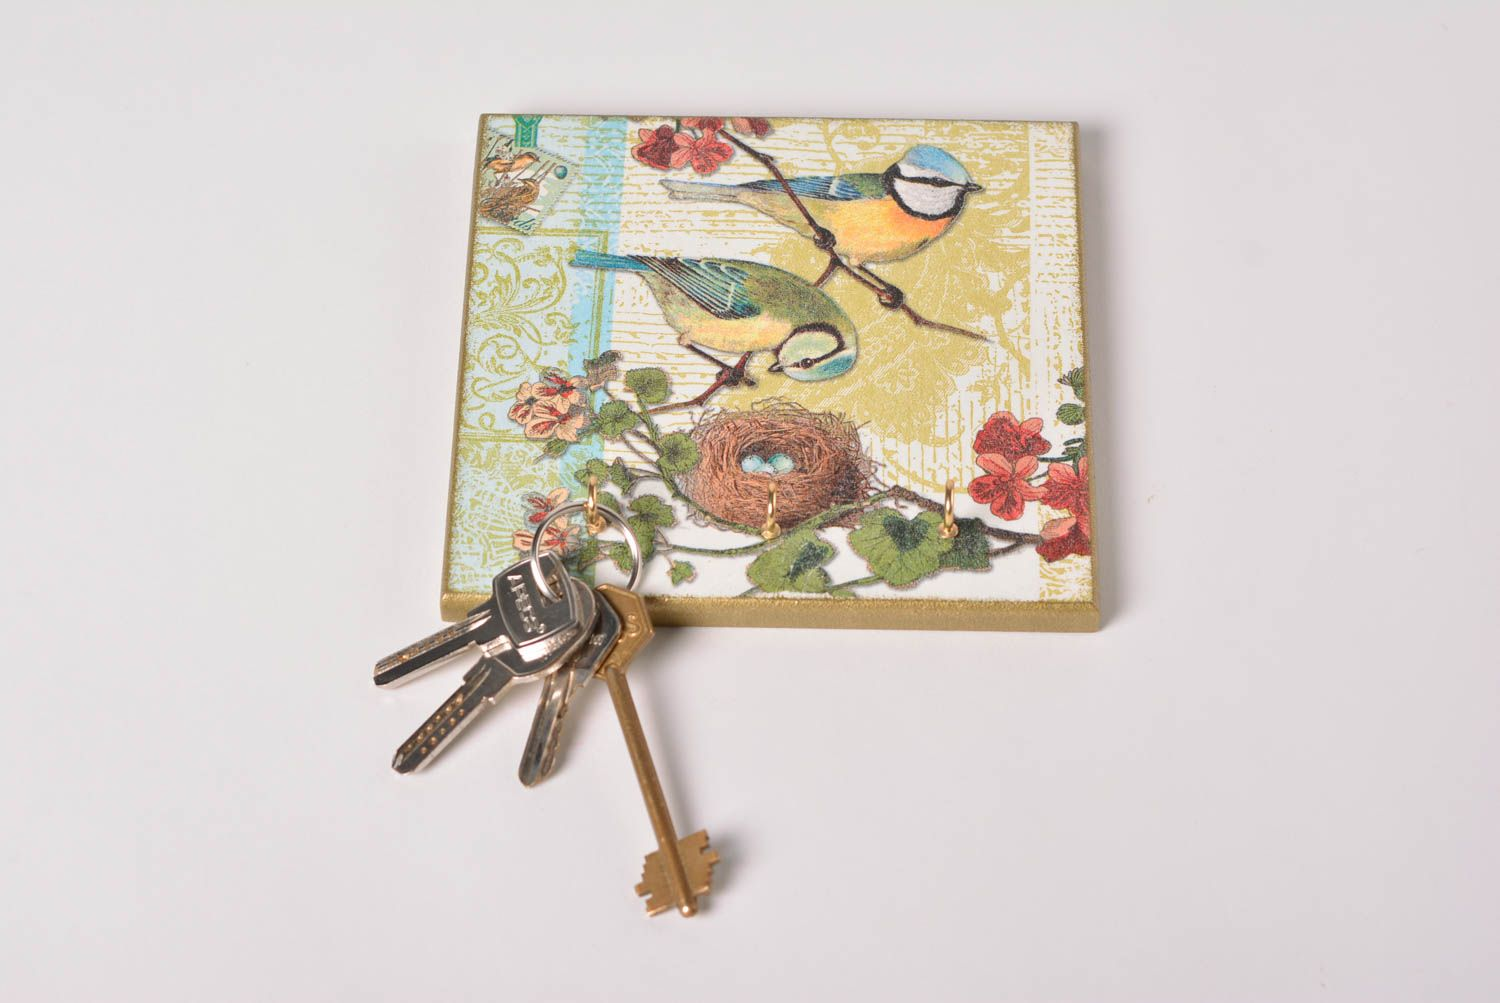 Attractive Hangers And Coat Racks Square Wall Handmade Key Holder Made Of MDF With Decoupage  Home Decor